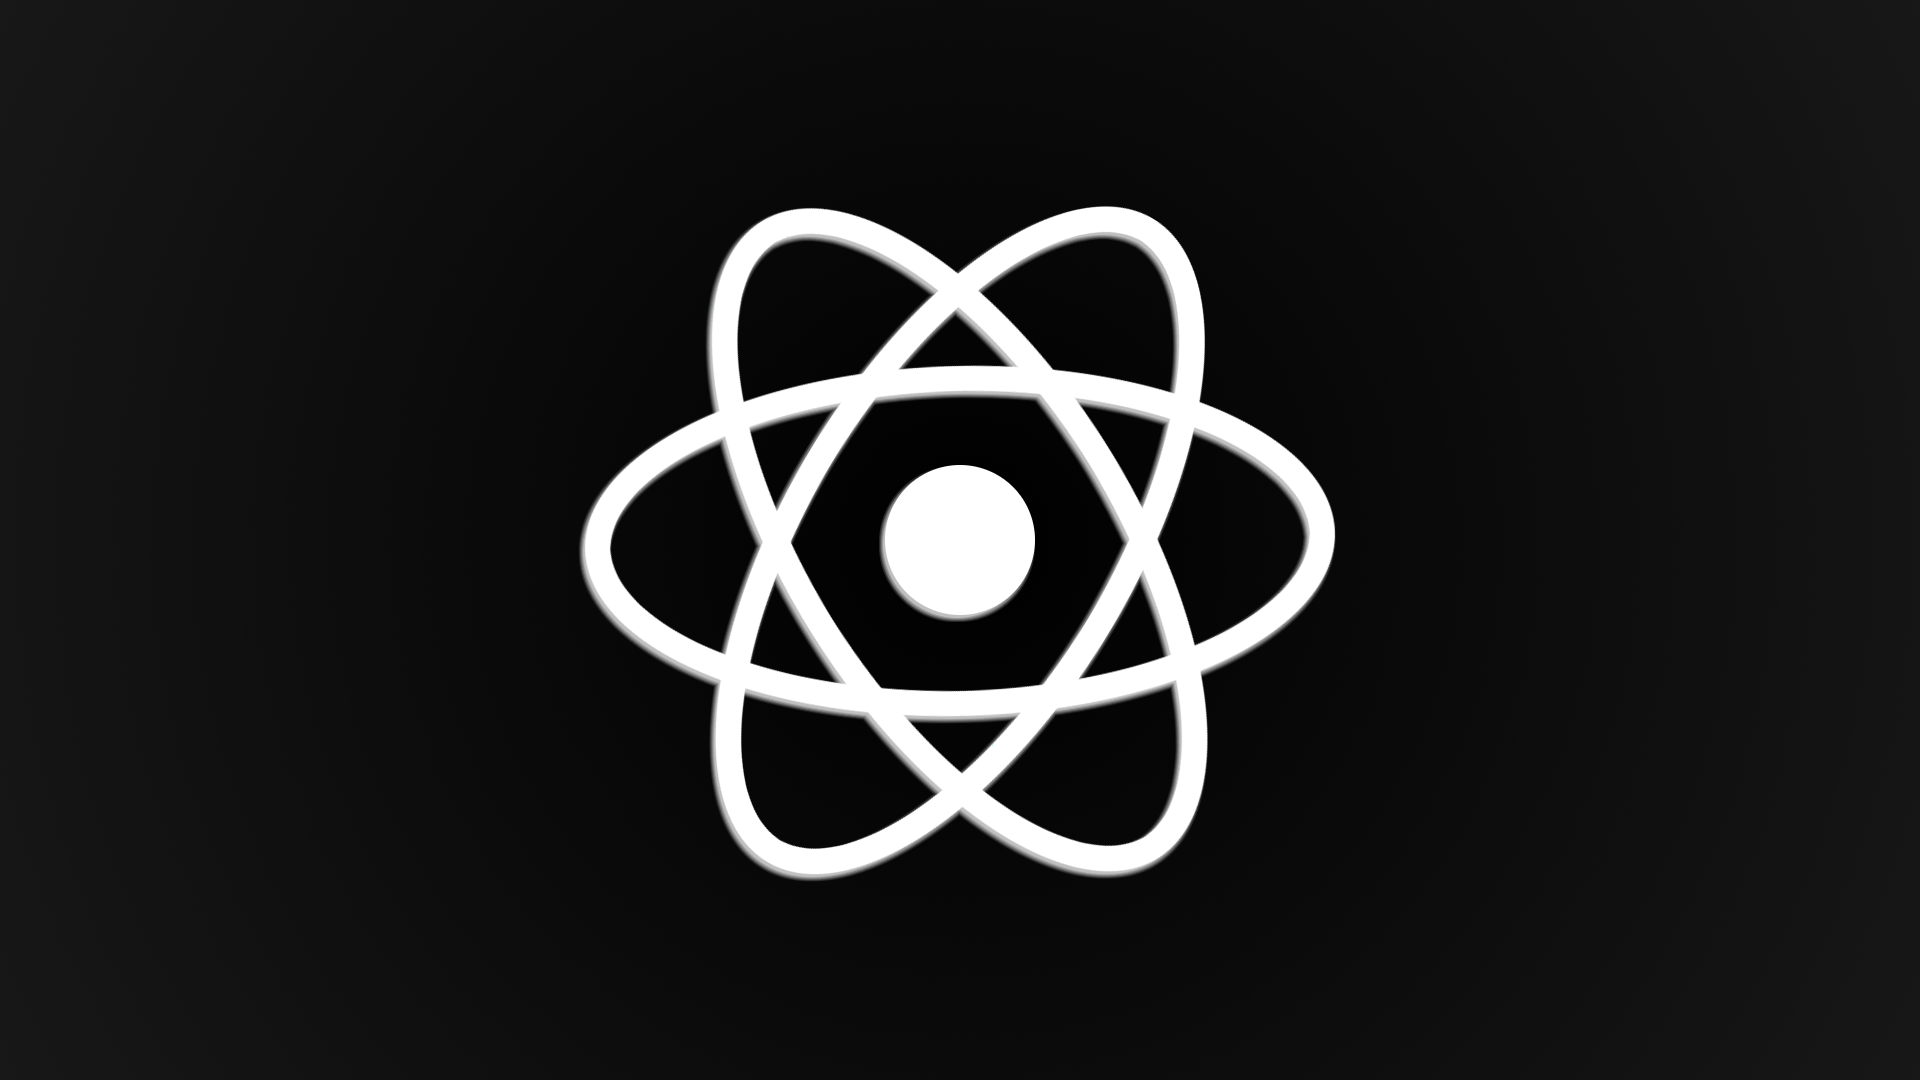 Iphone Wallpaper Chemistry Interesting Atom Hdq Images Collection Hd Widescreen